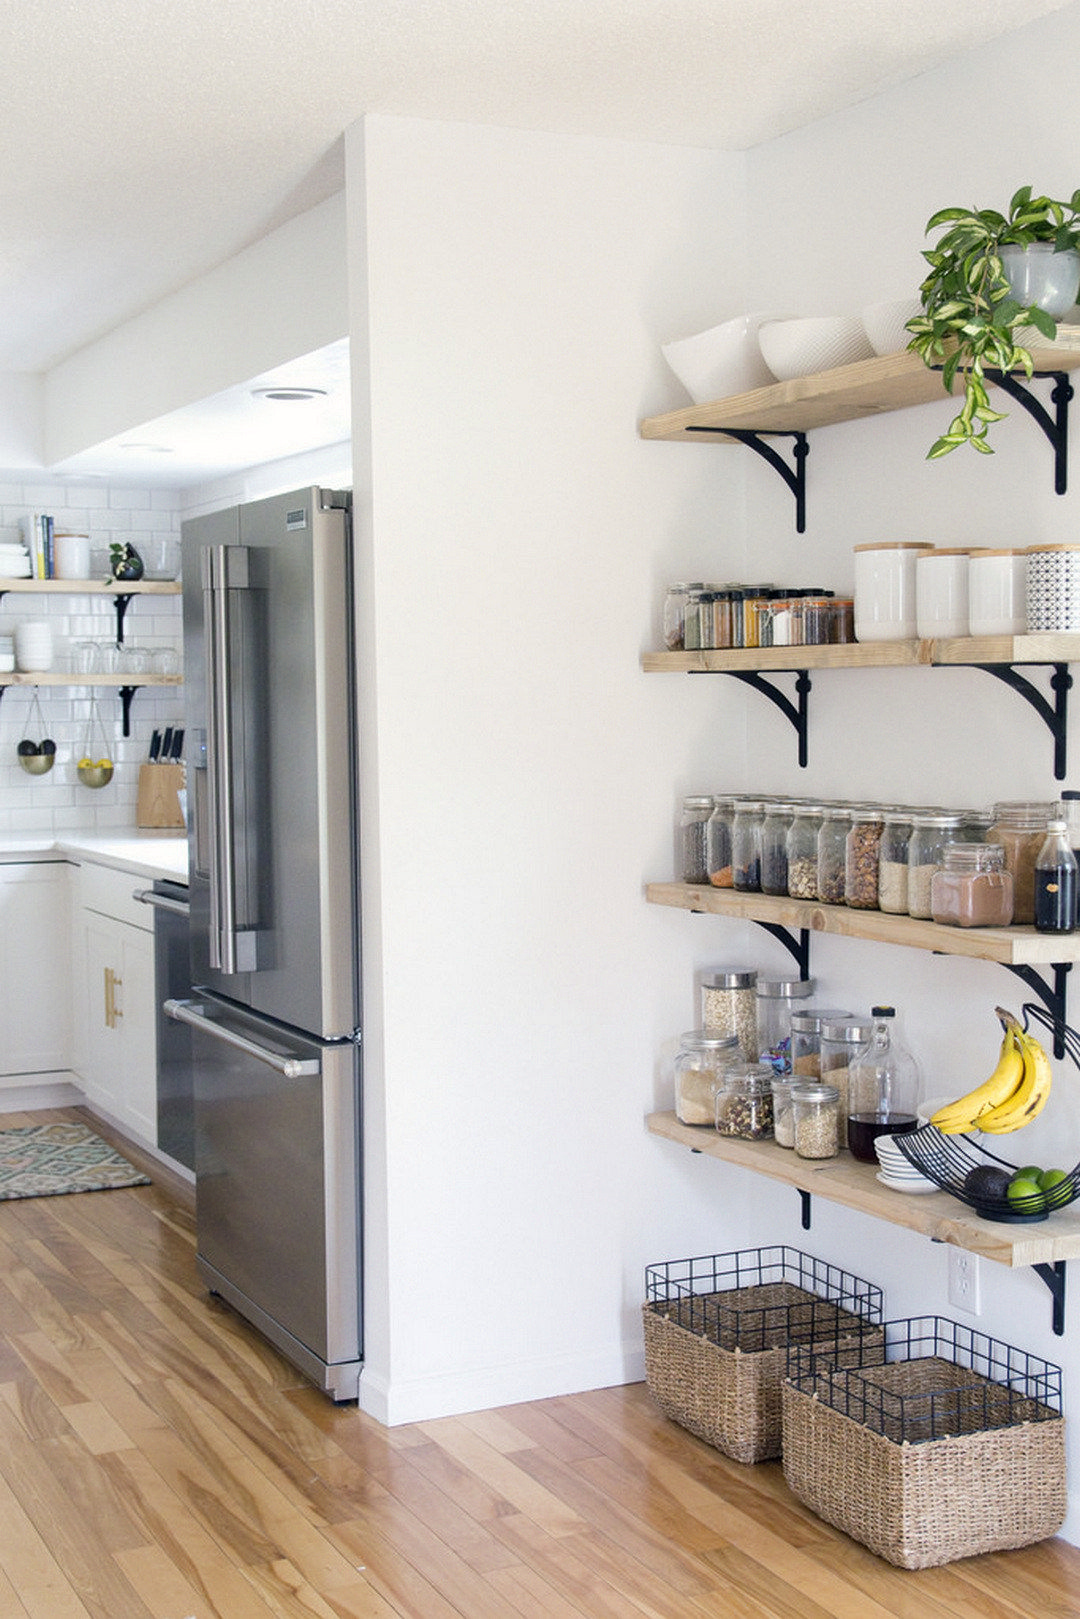 10 Smart Ways To Store Your Kitchen Tools Small Kitchen Storage Solutions Kitchen Wall Shelves Small Kitchen Storage